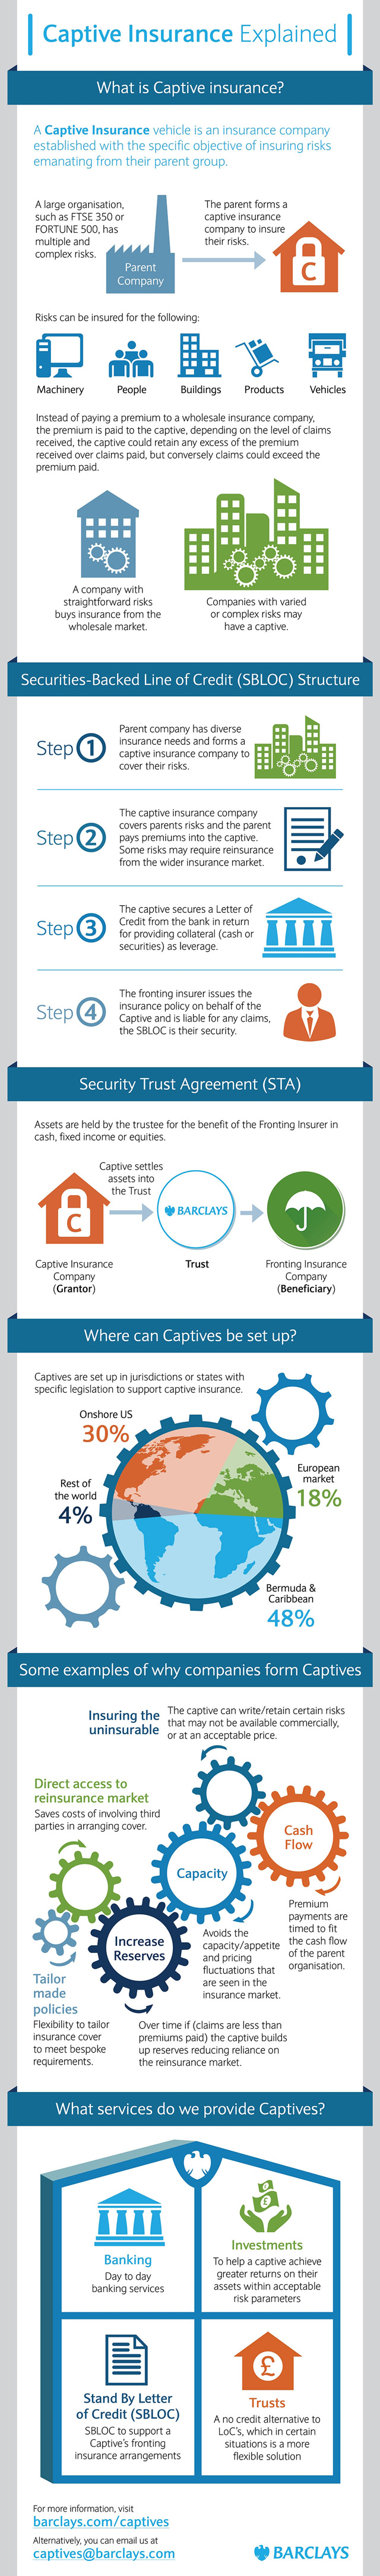 how does captive insurance work